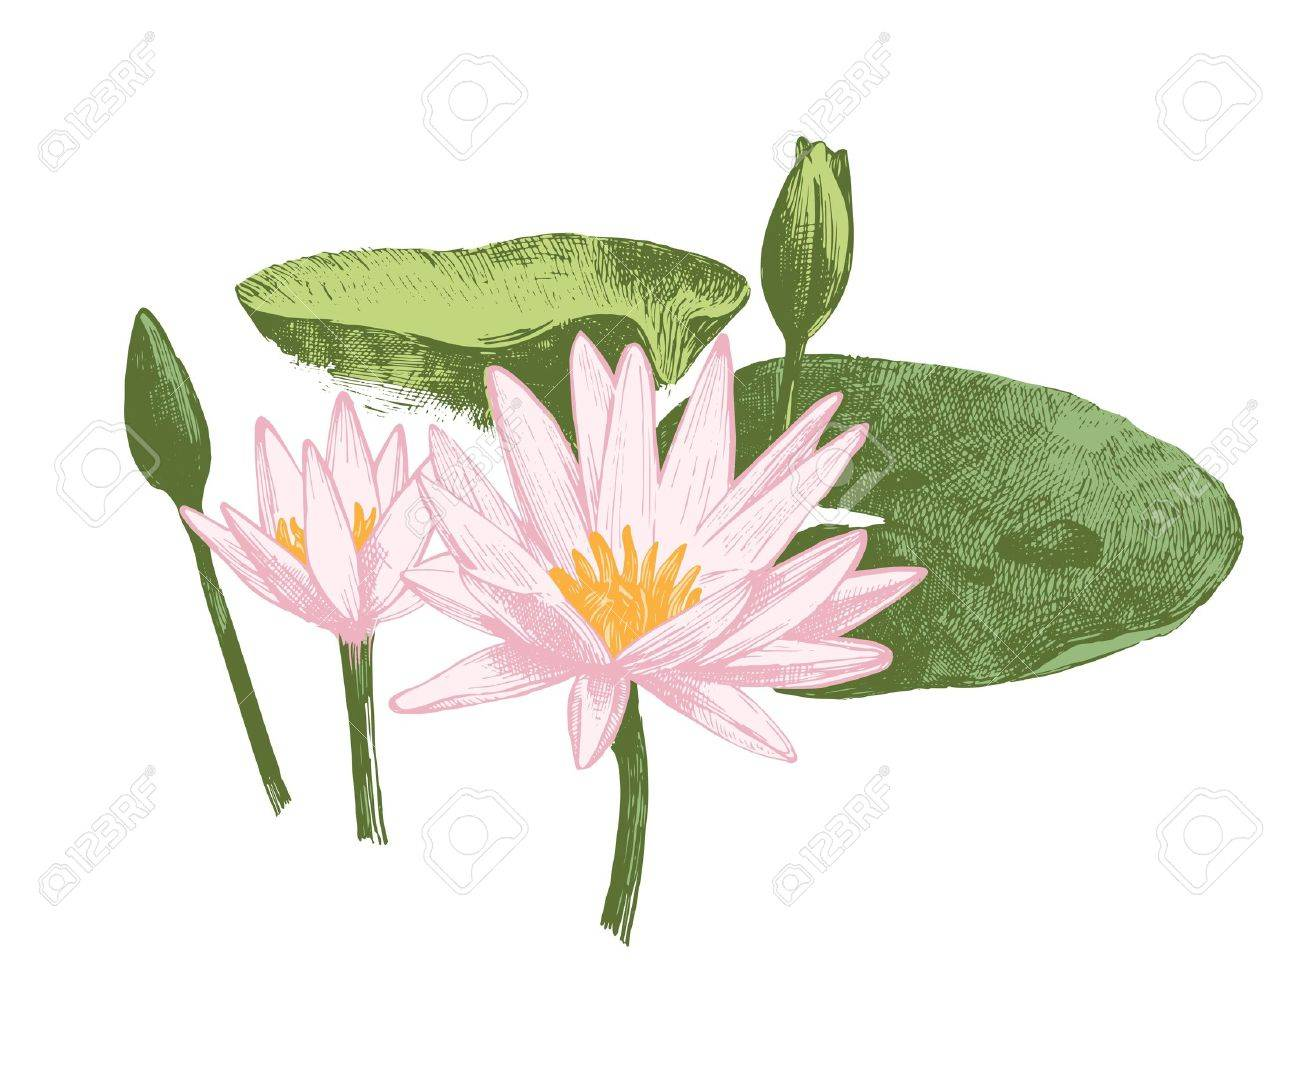 Hand drawn water lily flowers - 74748984